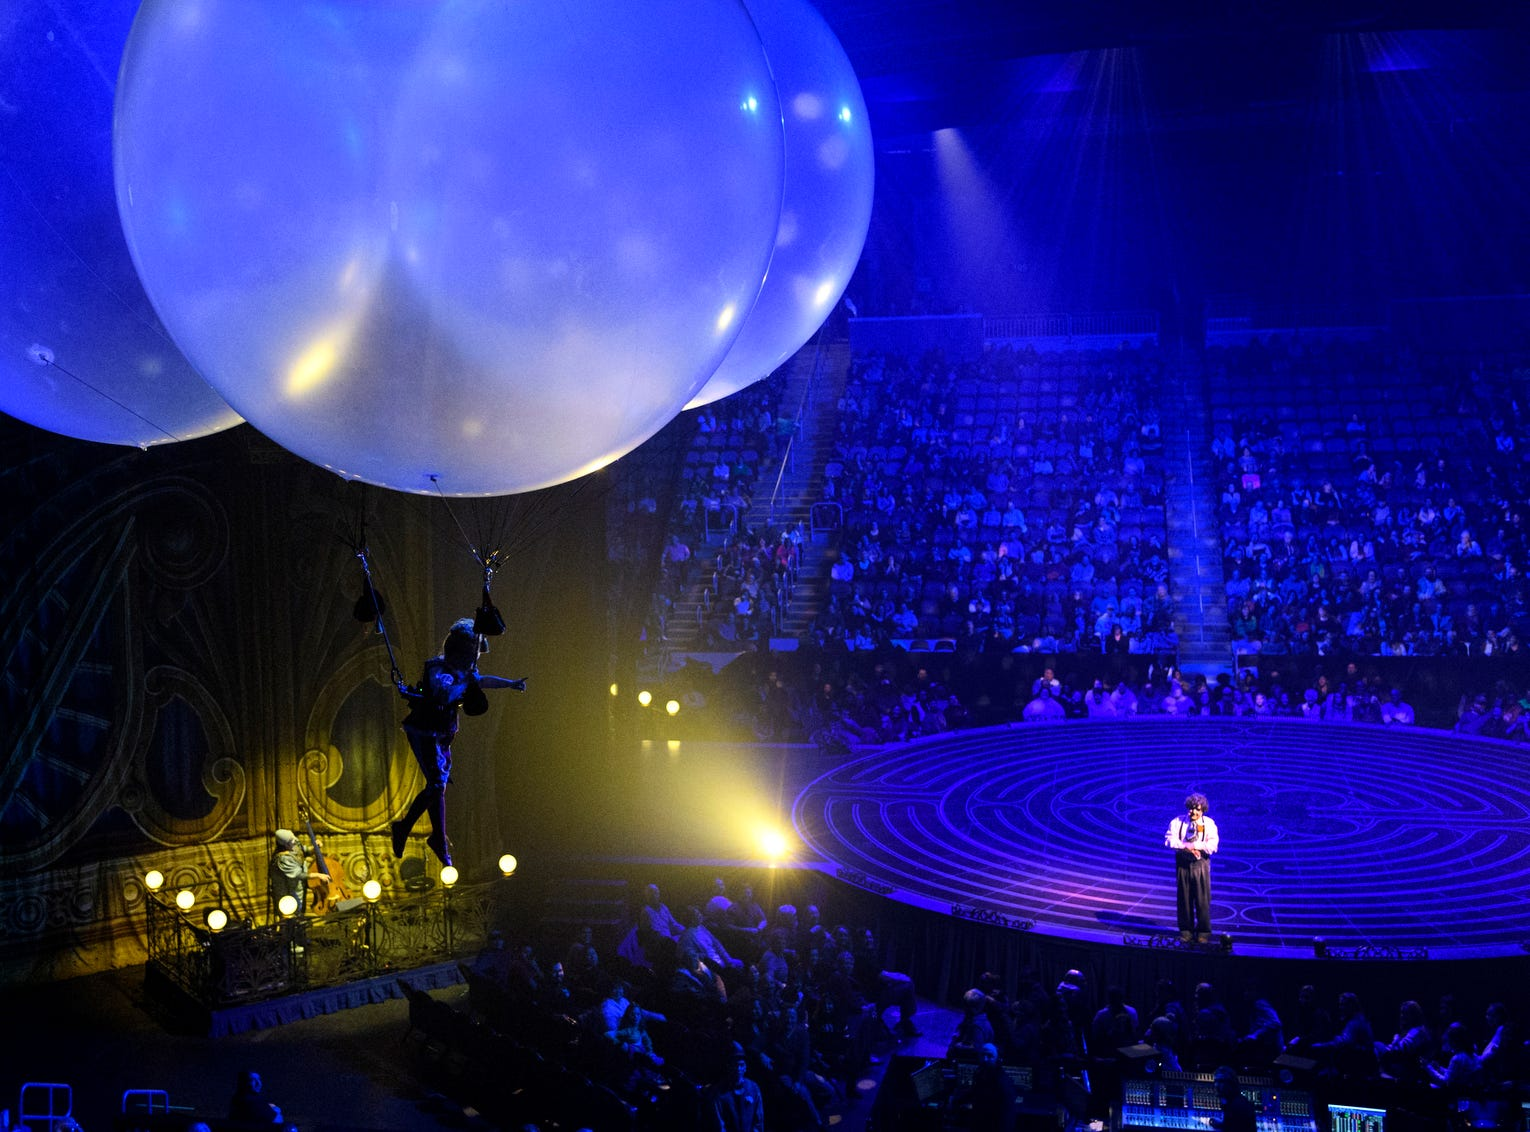 Valentyna Pahlevanyan, left, leaves Mauro the Dreamer Clown, played by Lolo Fernández, on stage to float around the crowd using inflatable balloons during Cirque du Soleil's Corteo show at Ford Center in Evansville, Ind., Wednesday night, Jan. 23, 2019. The crowd was encouraged to interact with her by using their hands to push her around the arena and then back to the stage before the end of the act.